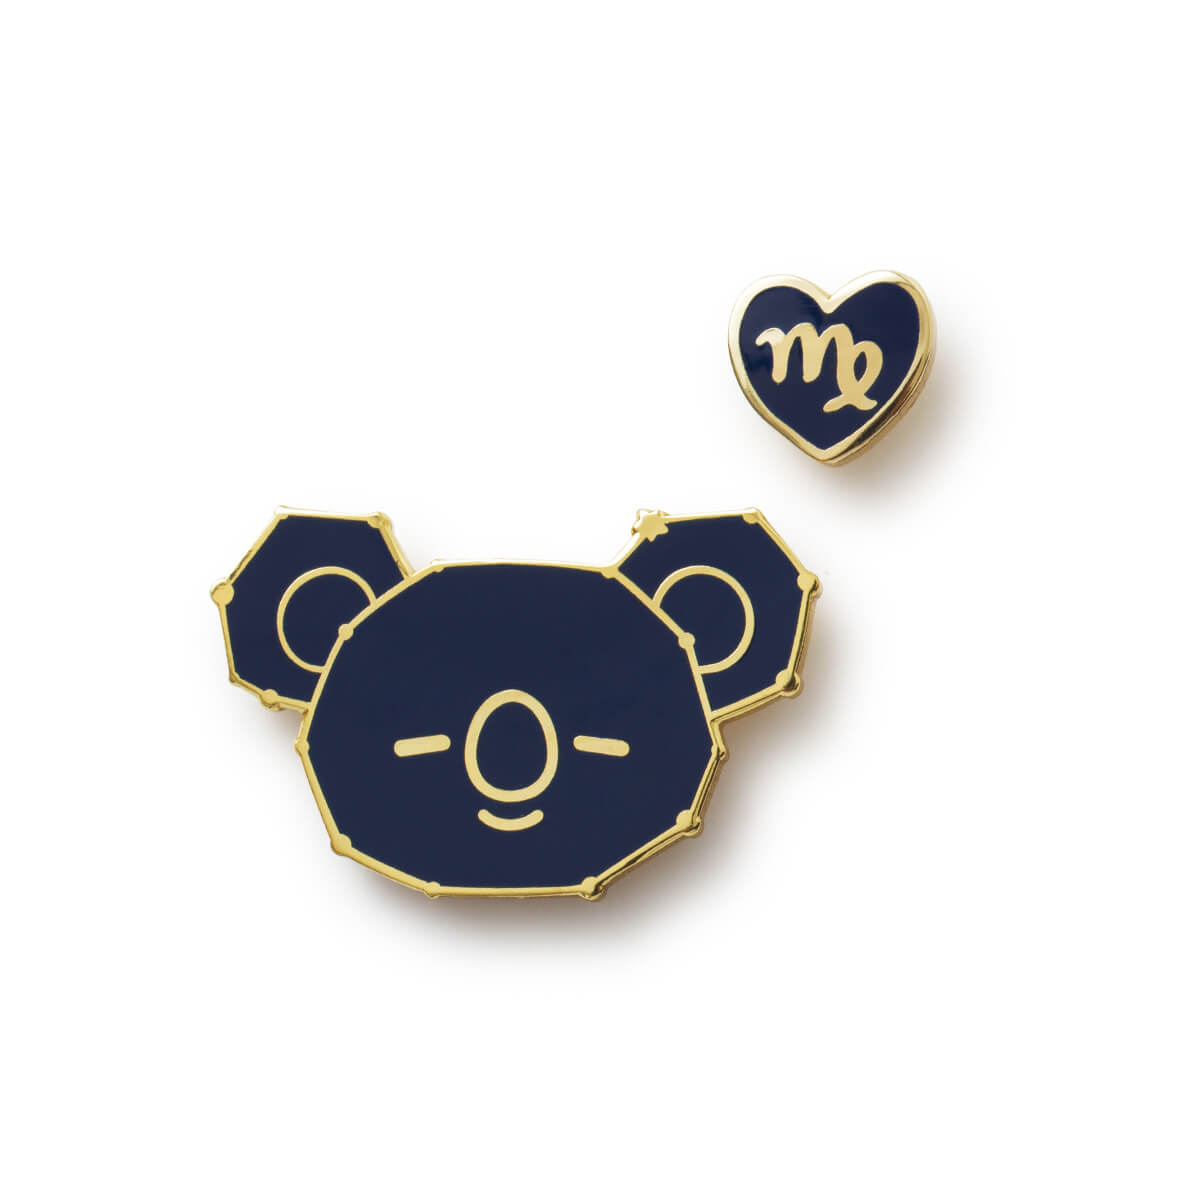 BT21 KOYA Universtar Metal Badge 3